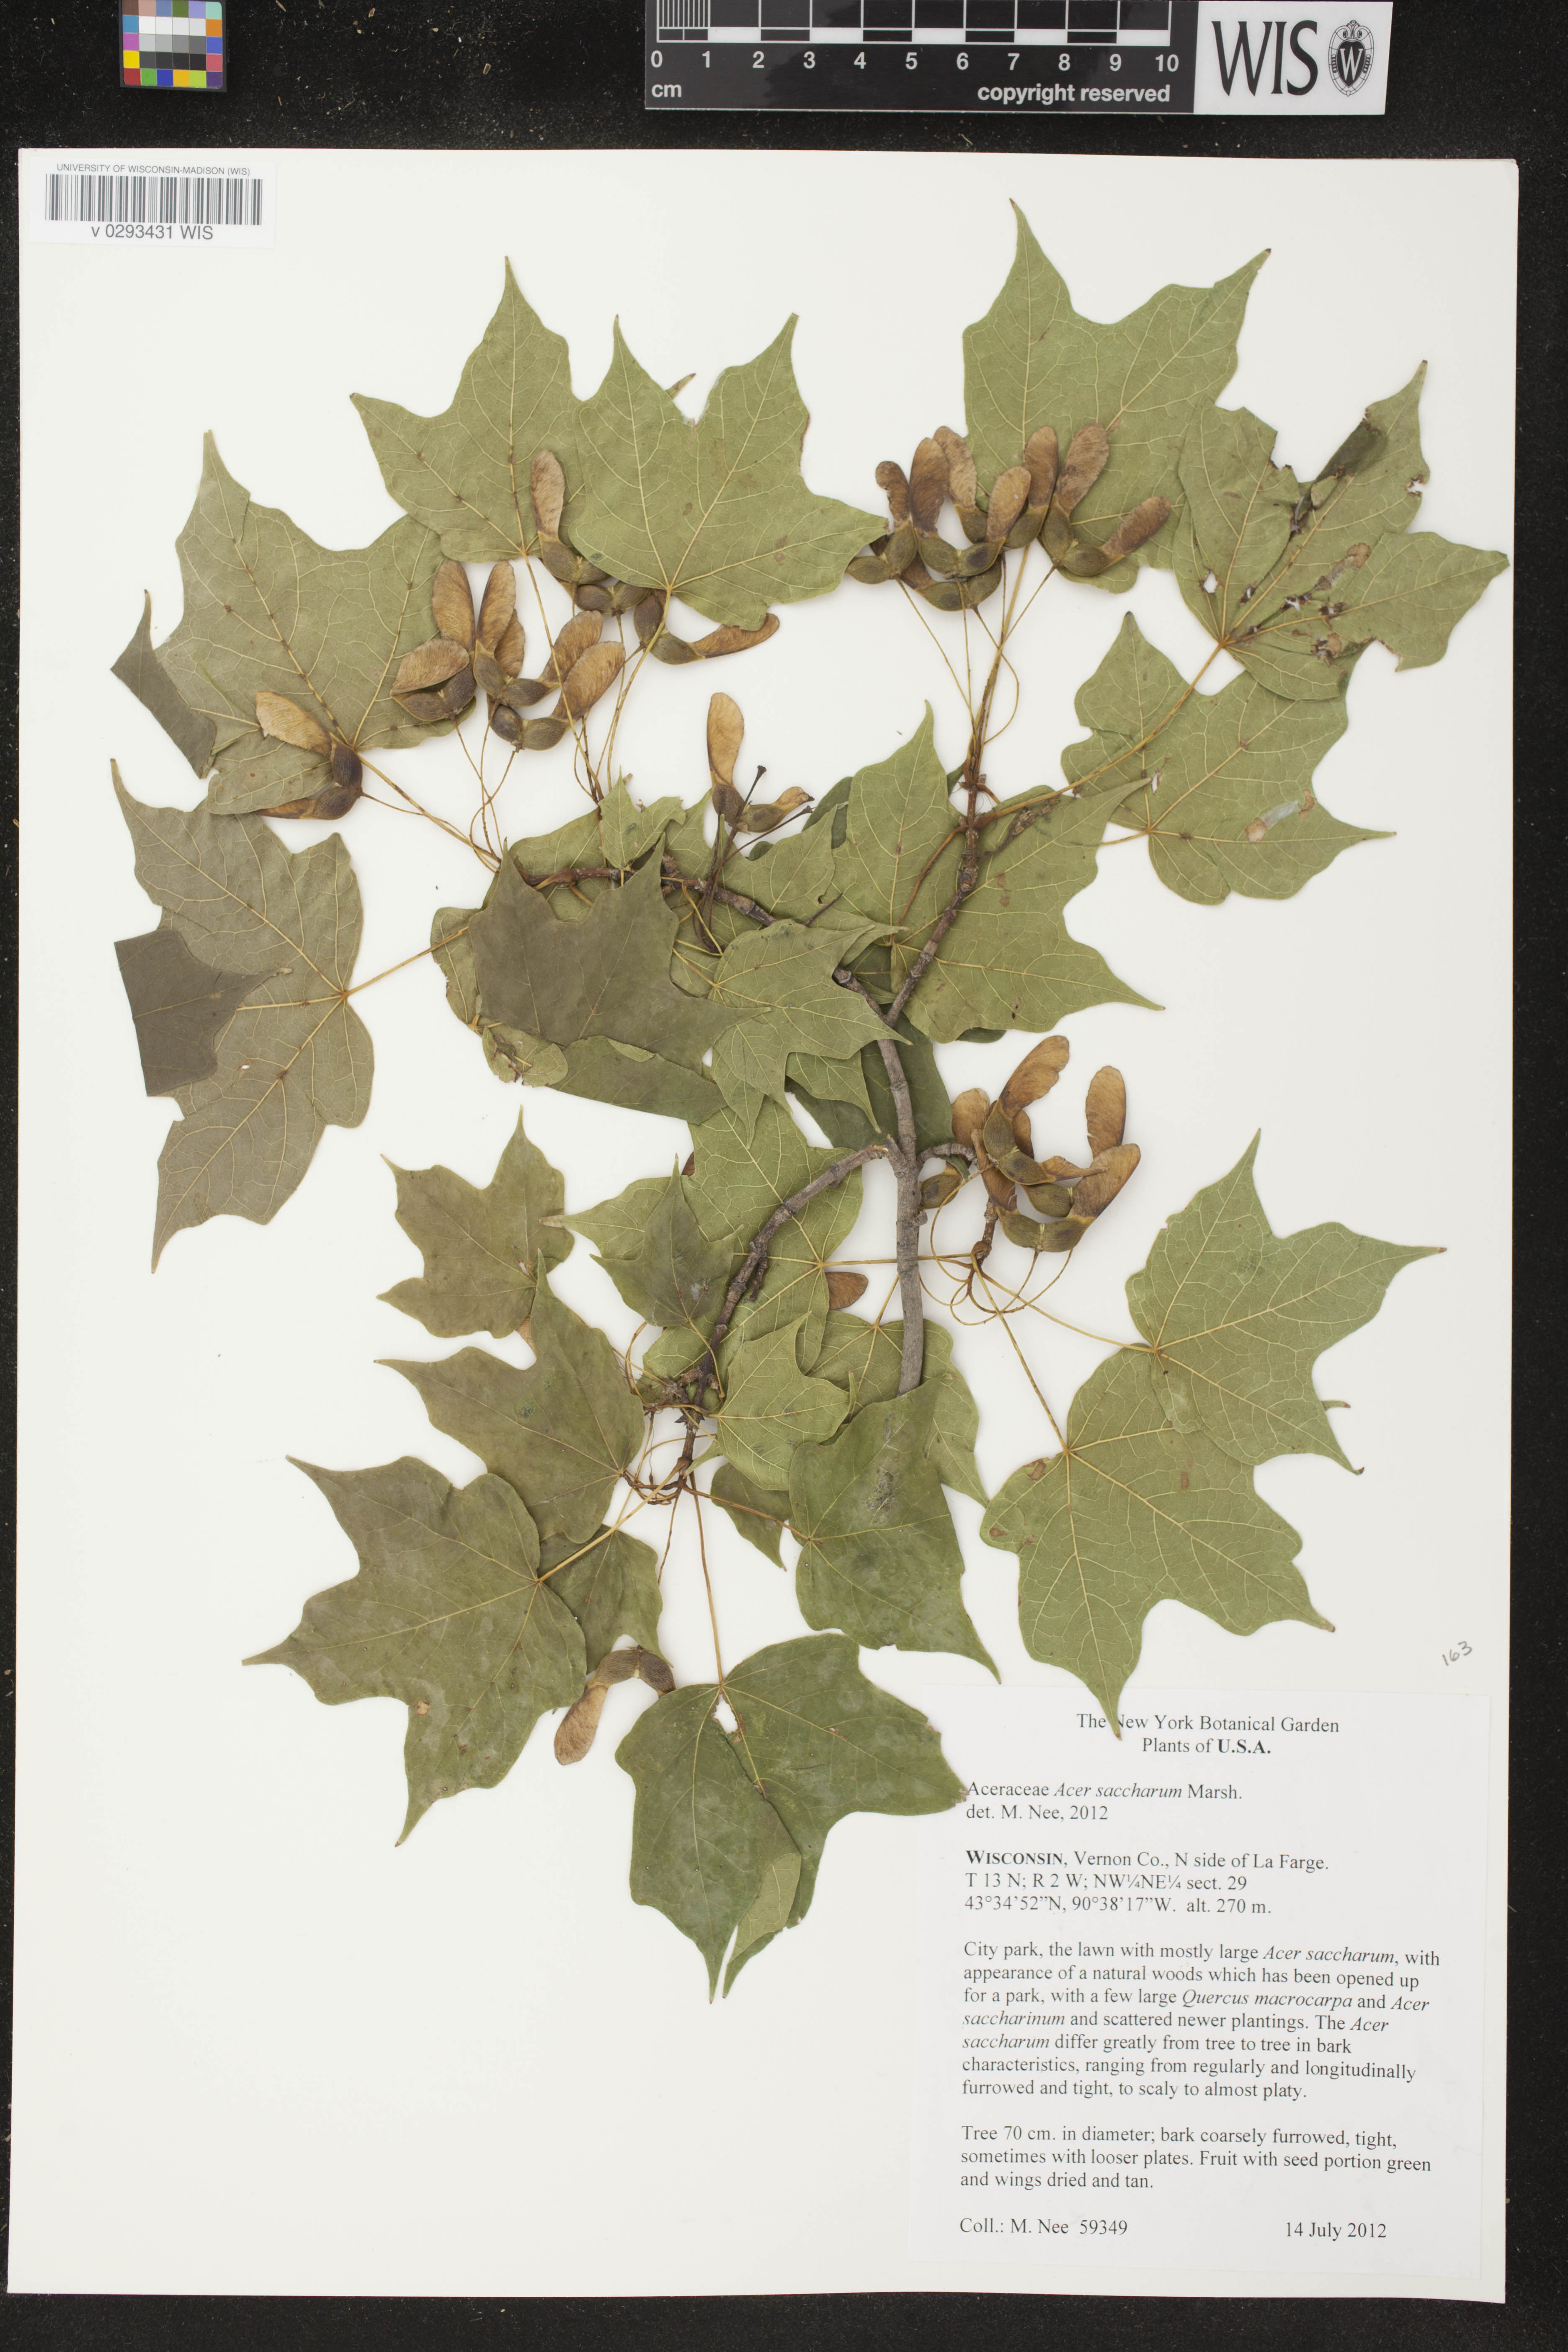 Image of Acer saccharum